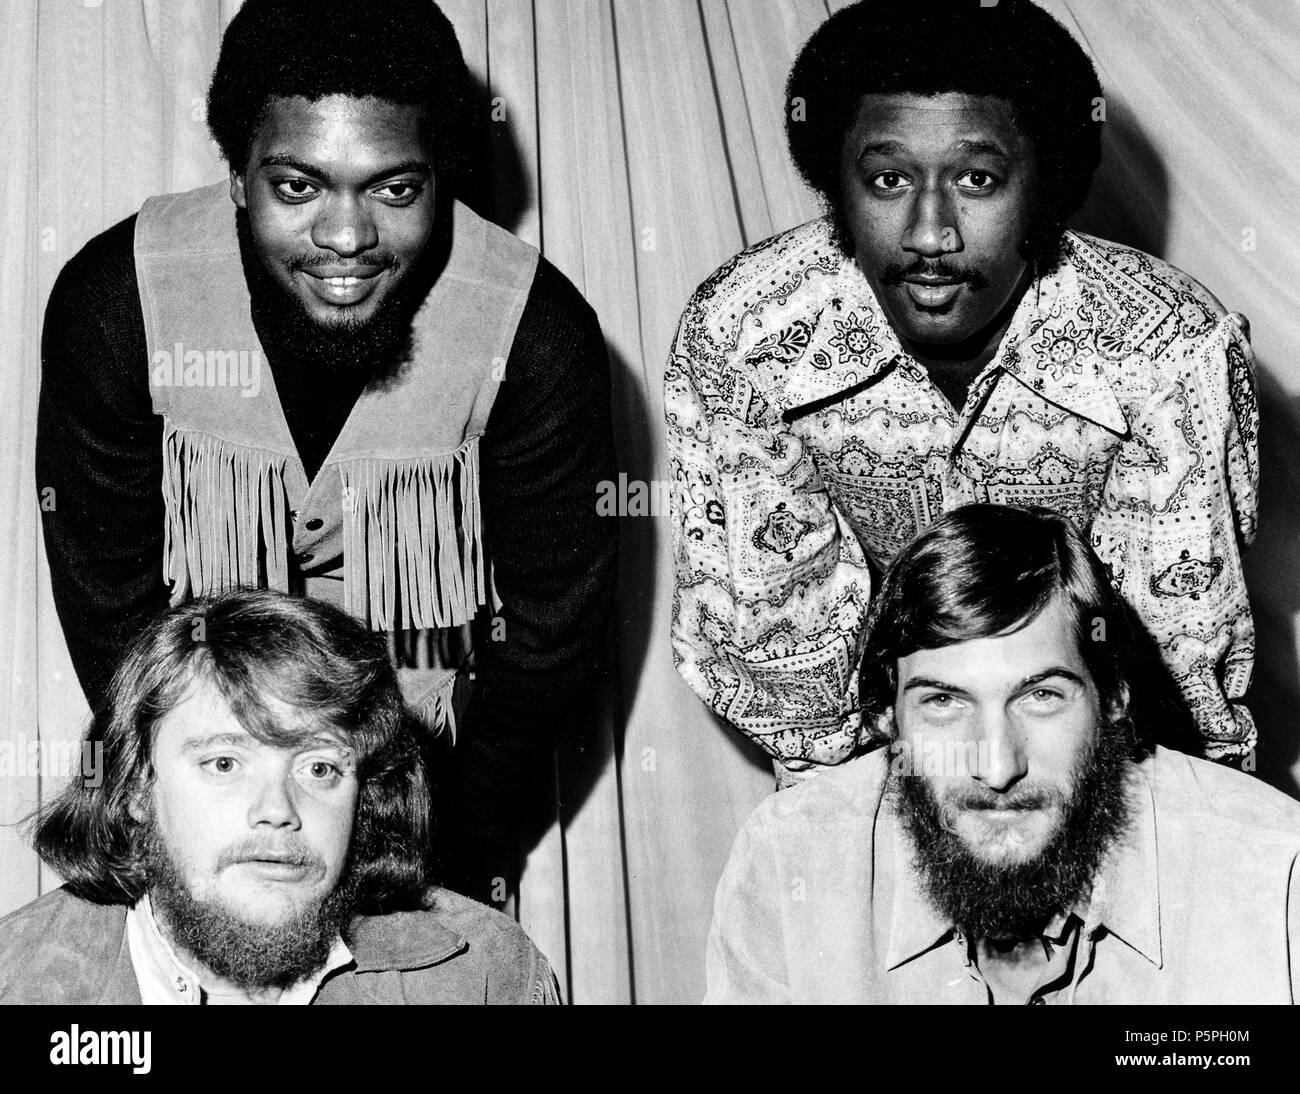 booker T. & the M.G.'s, 70s - Stock Image